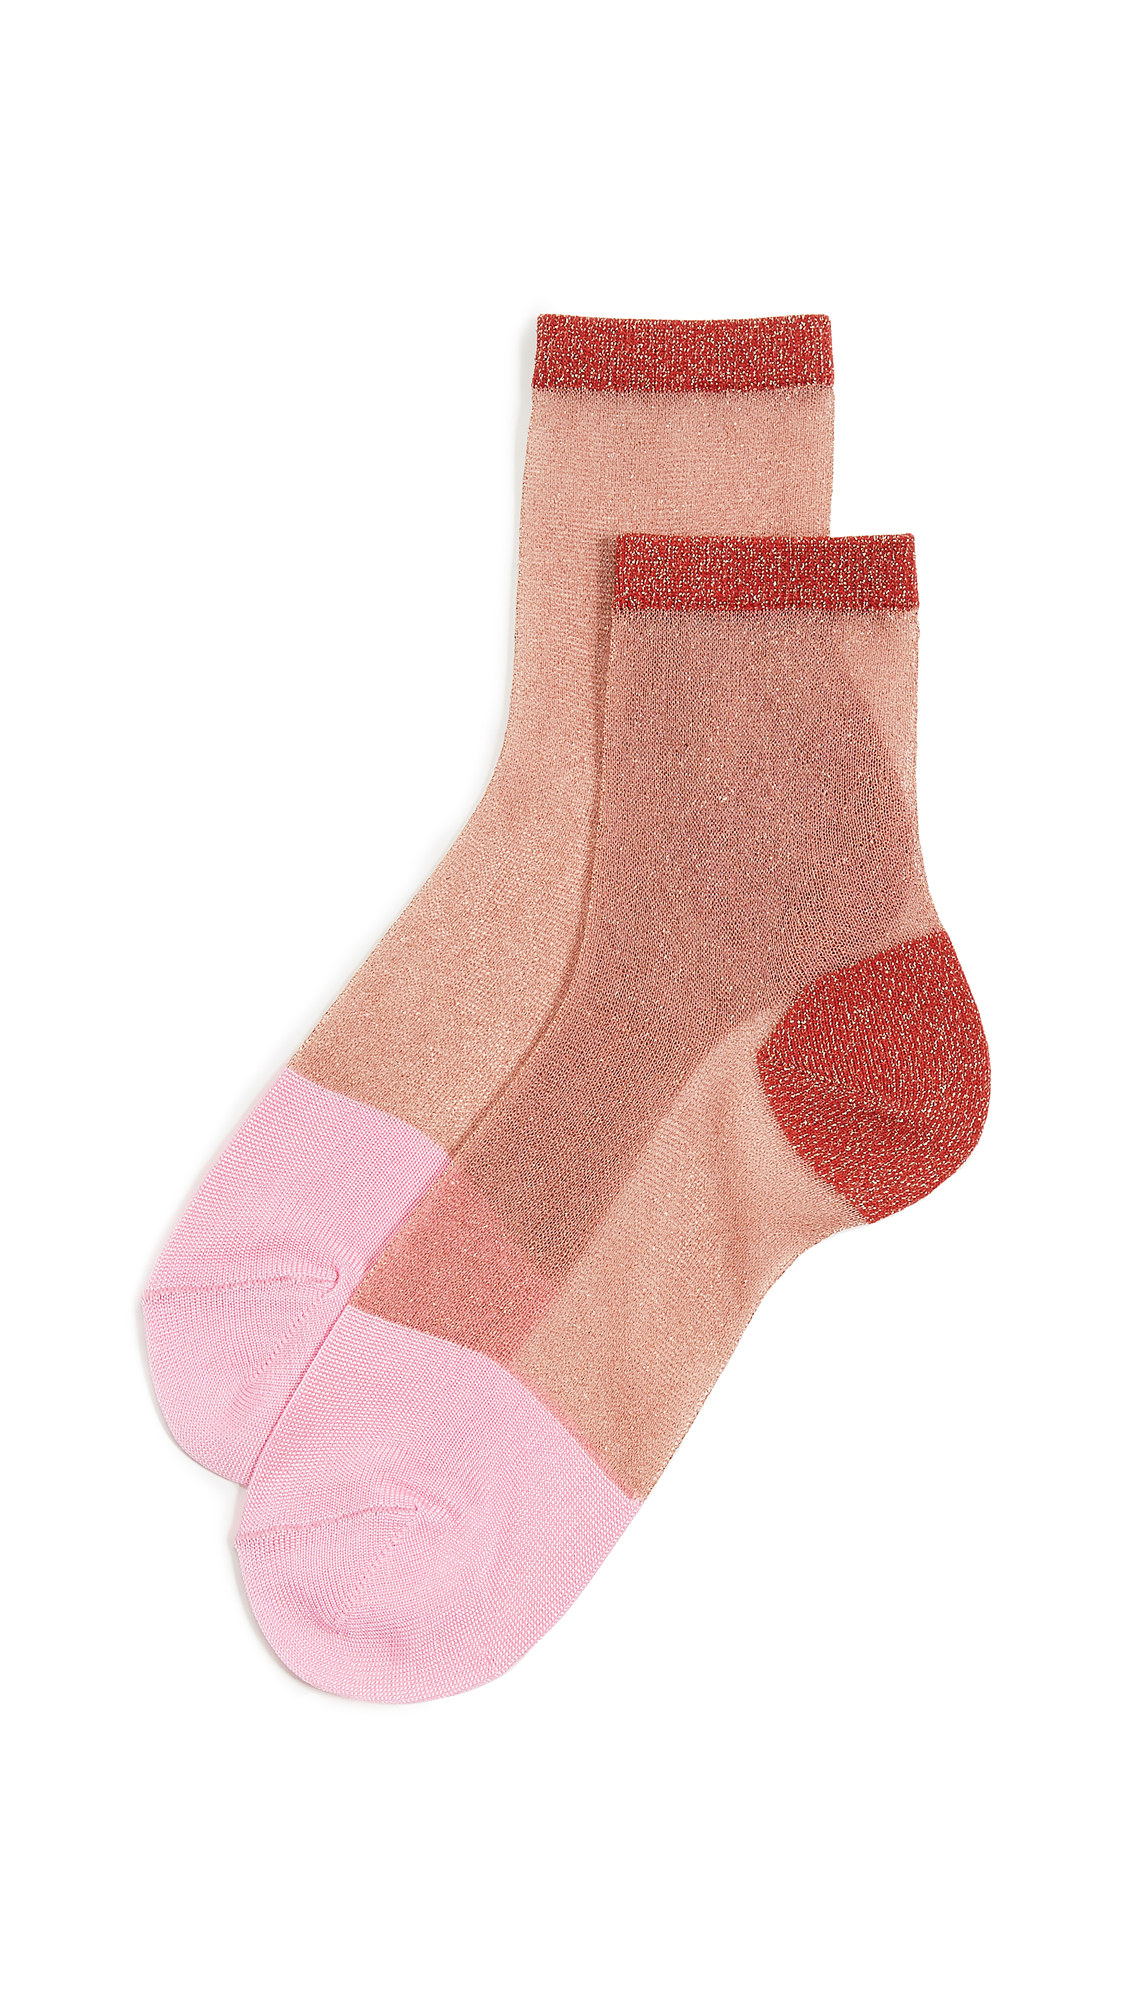 HYSTERIA Lurex Franca Ankle Socks in Red/Pink